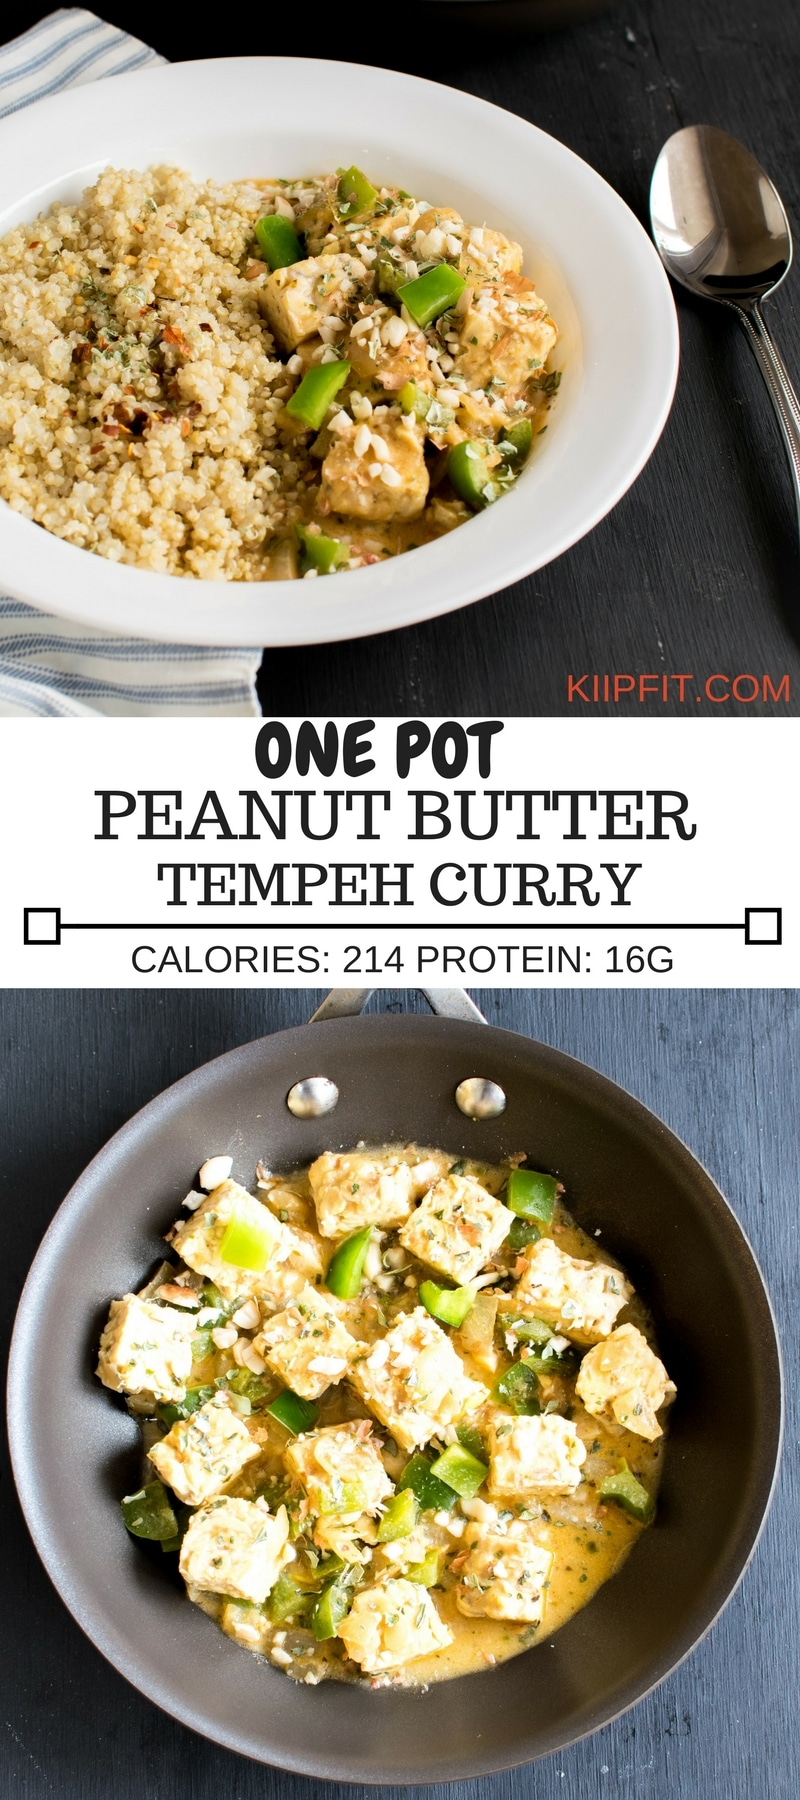 One Pot Peanut Butter Tempeh Curry is a lip-smacking entrée that's loaded with vegan protein. I made this recipe with simple ingredients and in few easy steps yet it's satisfying and flavorful [ vegan ] kiipfit.com